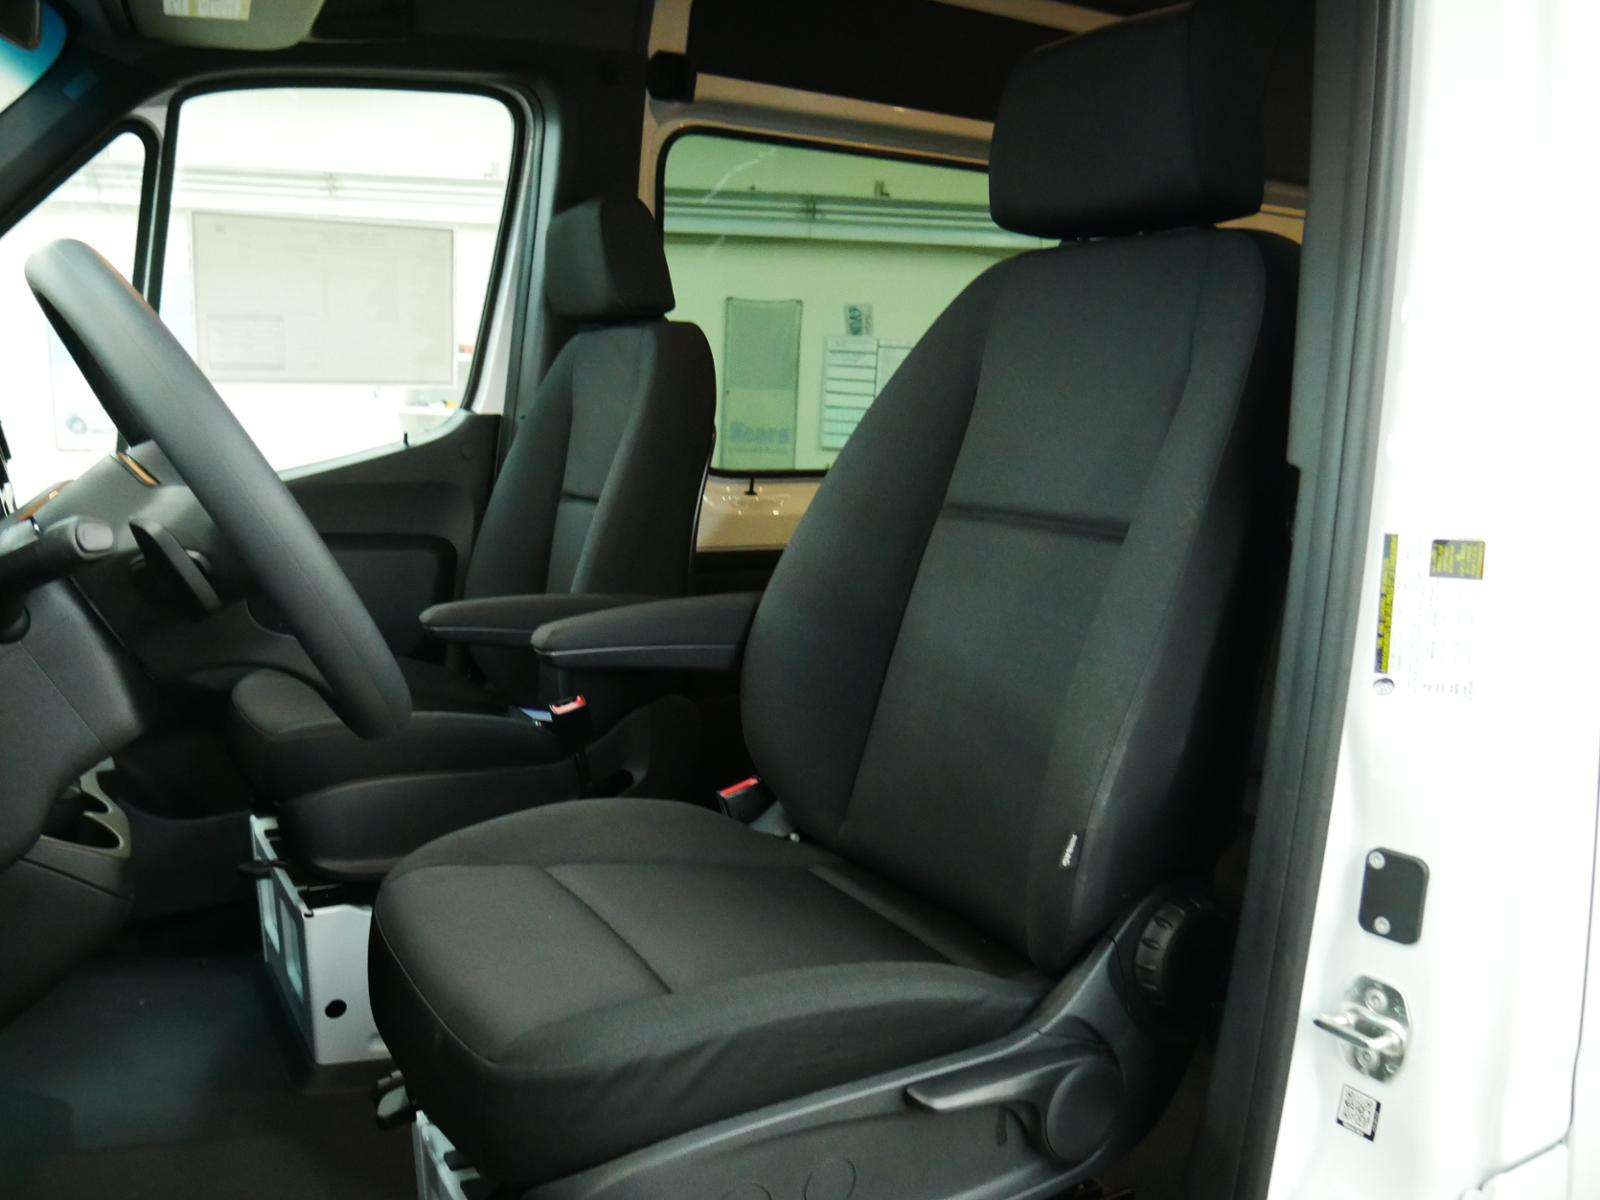 New 2019 Mercedes-Benz Sprinter 2500 2500 Crew Van